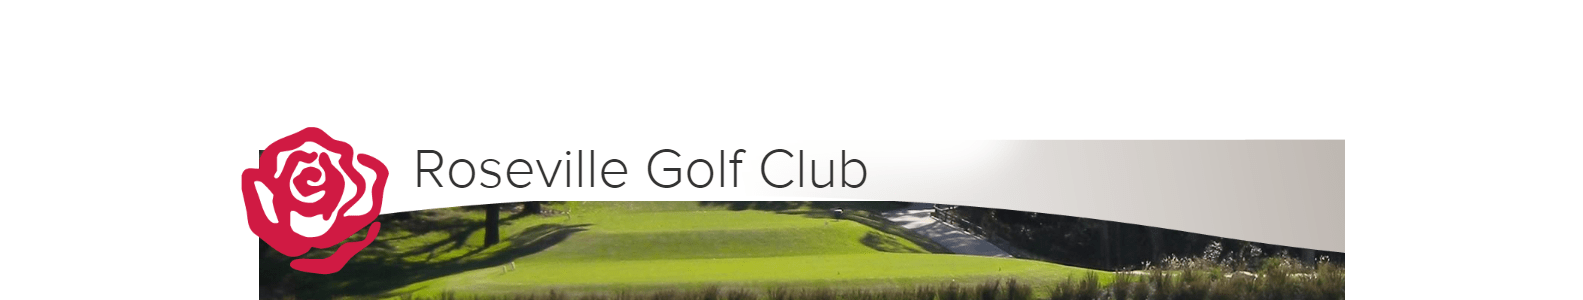 How to Register for Roseville Golf Club Bridge Games